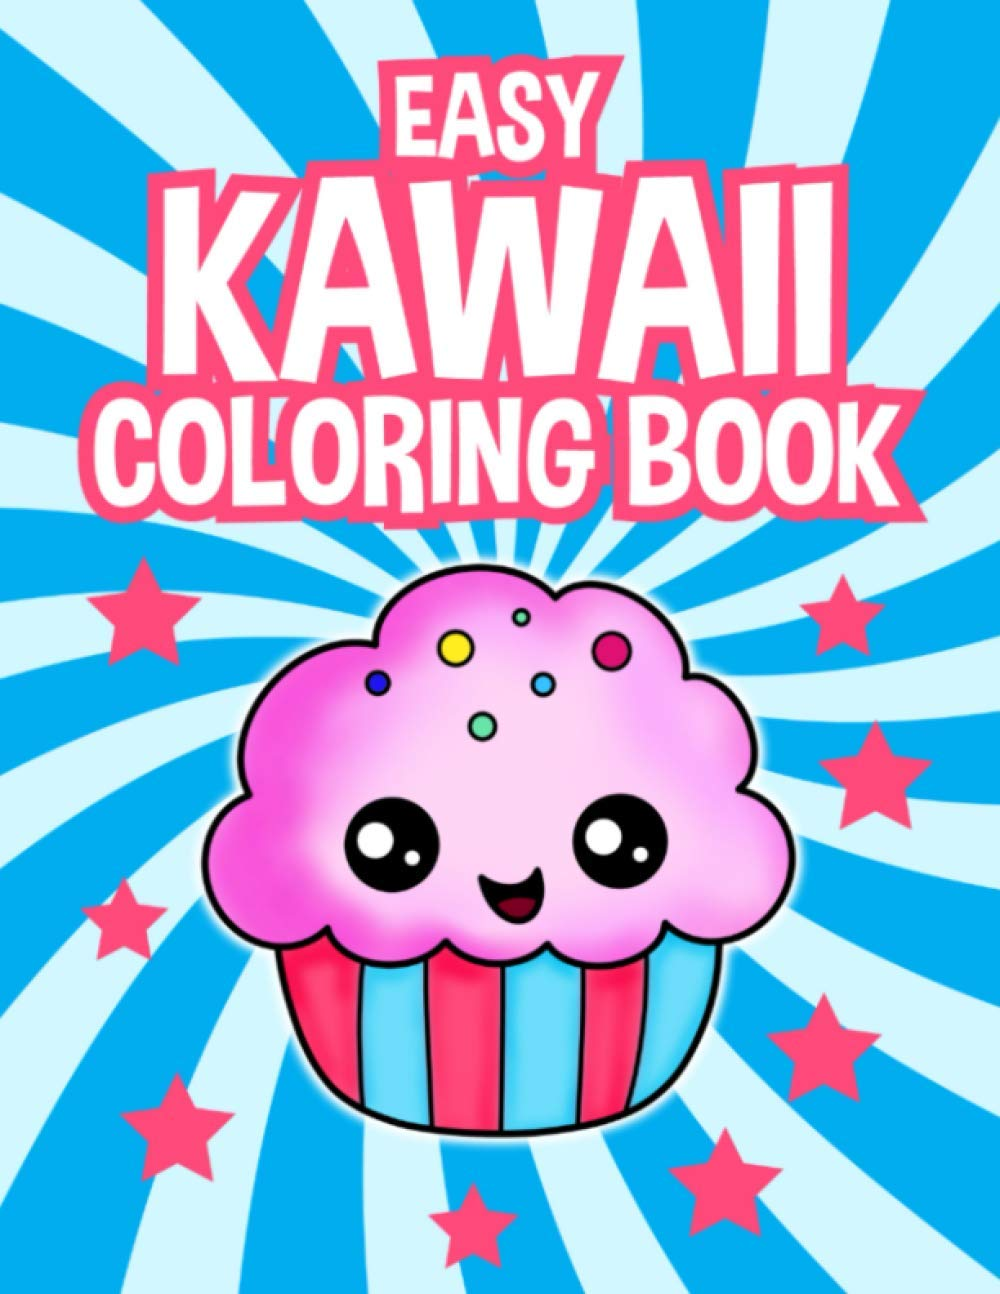 Easy Kawaii Coloring Book Cute Coloring Book For Kids Of All Ages 43 Fun And Relaxing Kawaii Coloring Pages Amazon Co Uk Jones Nora 9798692455024 Books